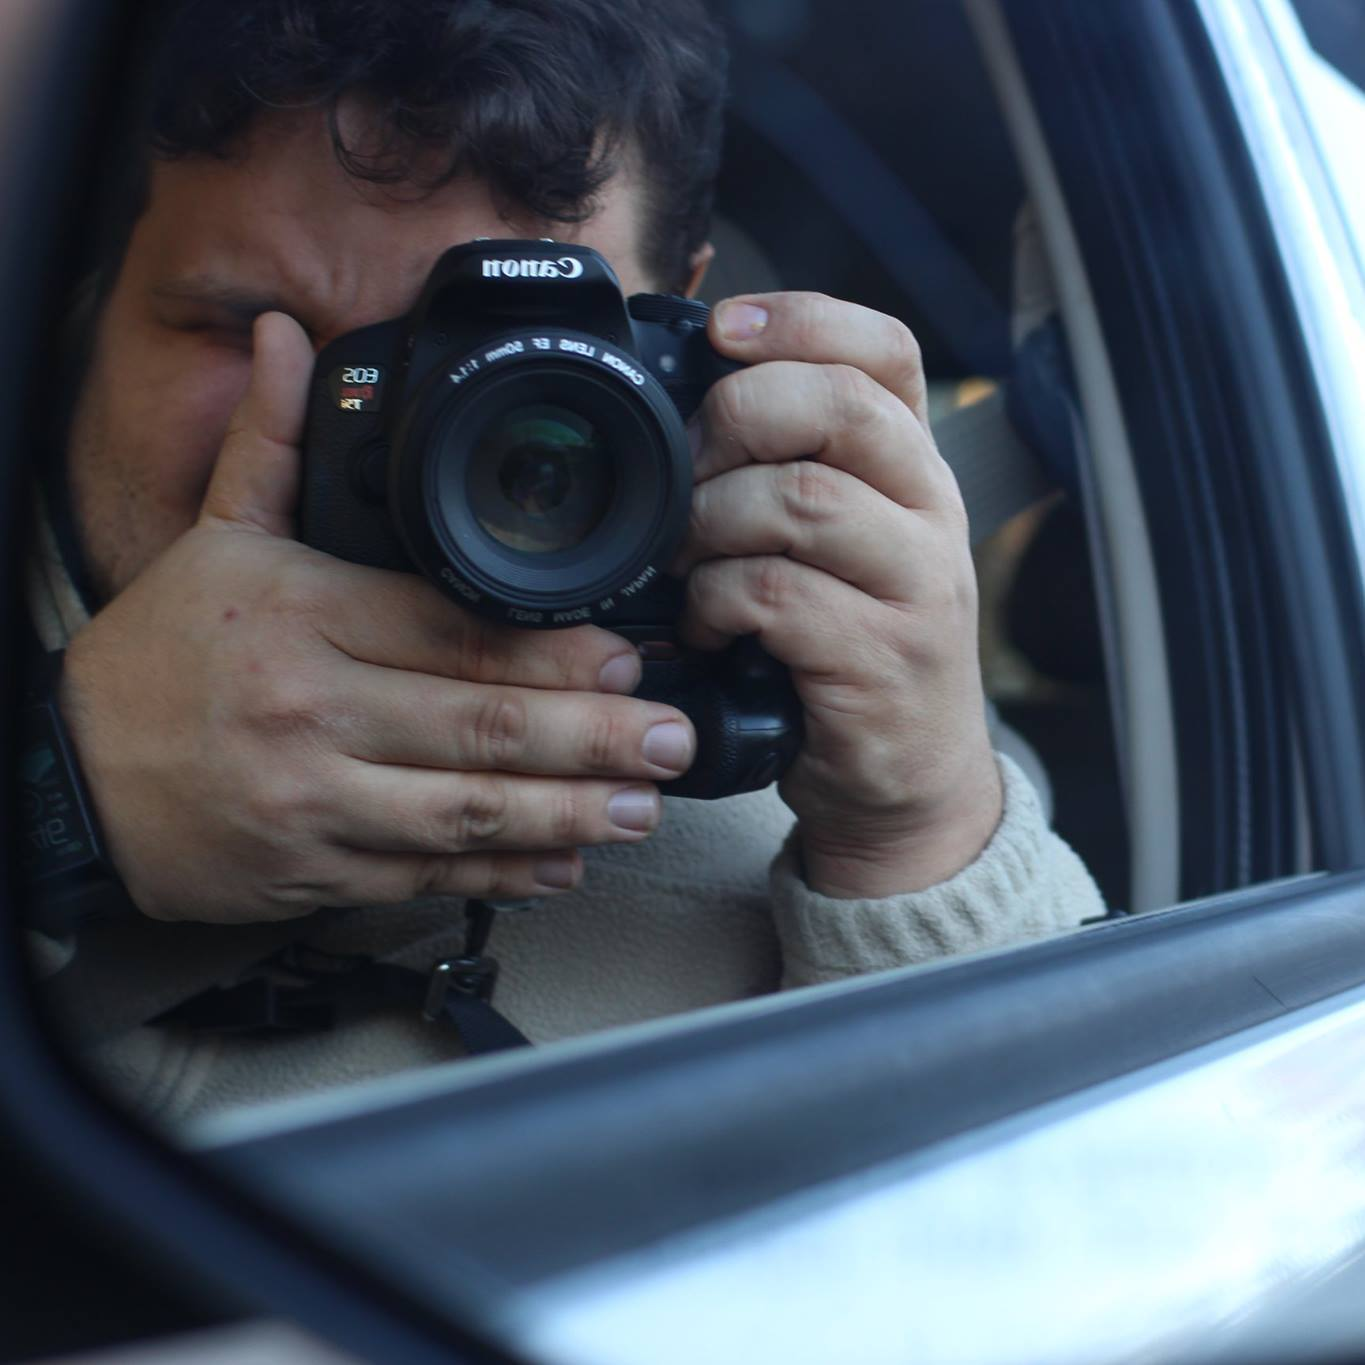 me taking a picture in a car mirrior